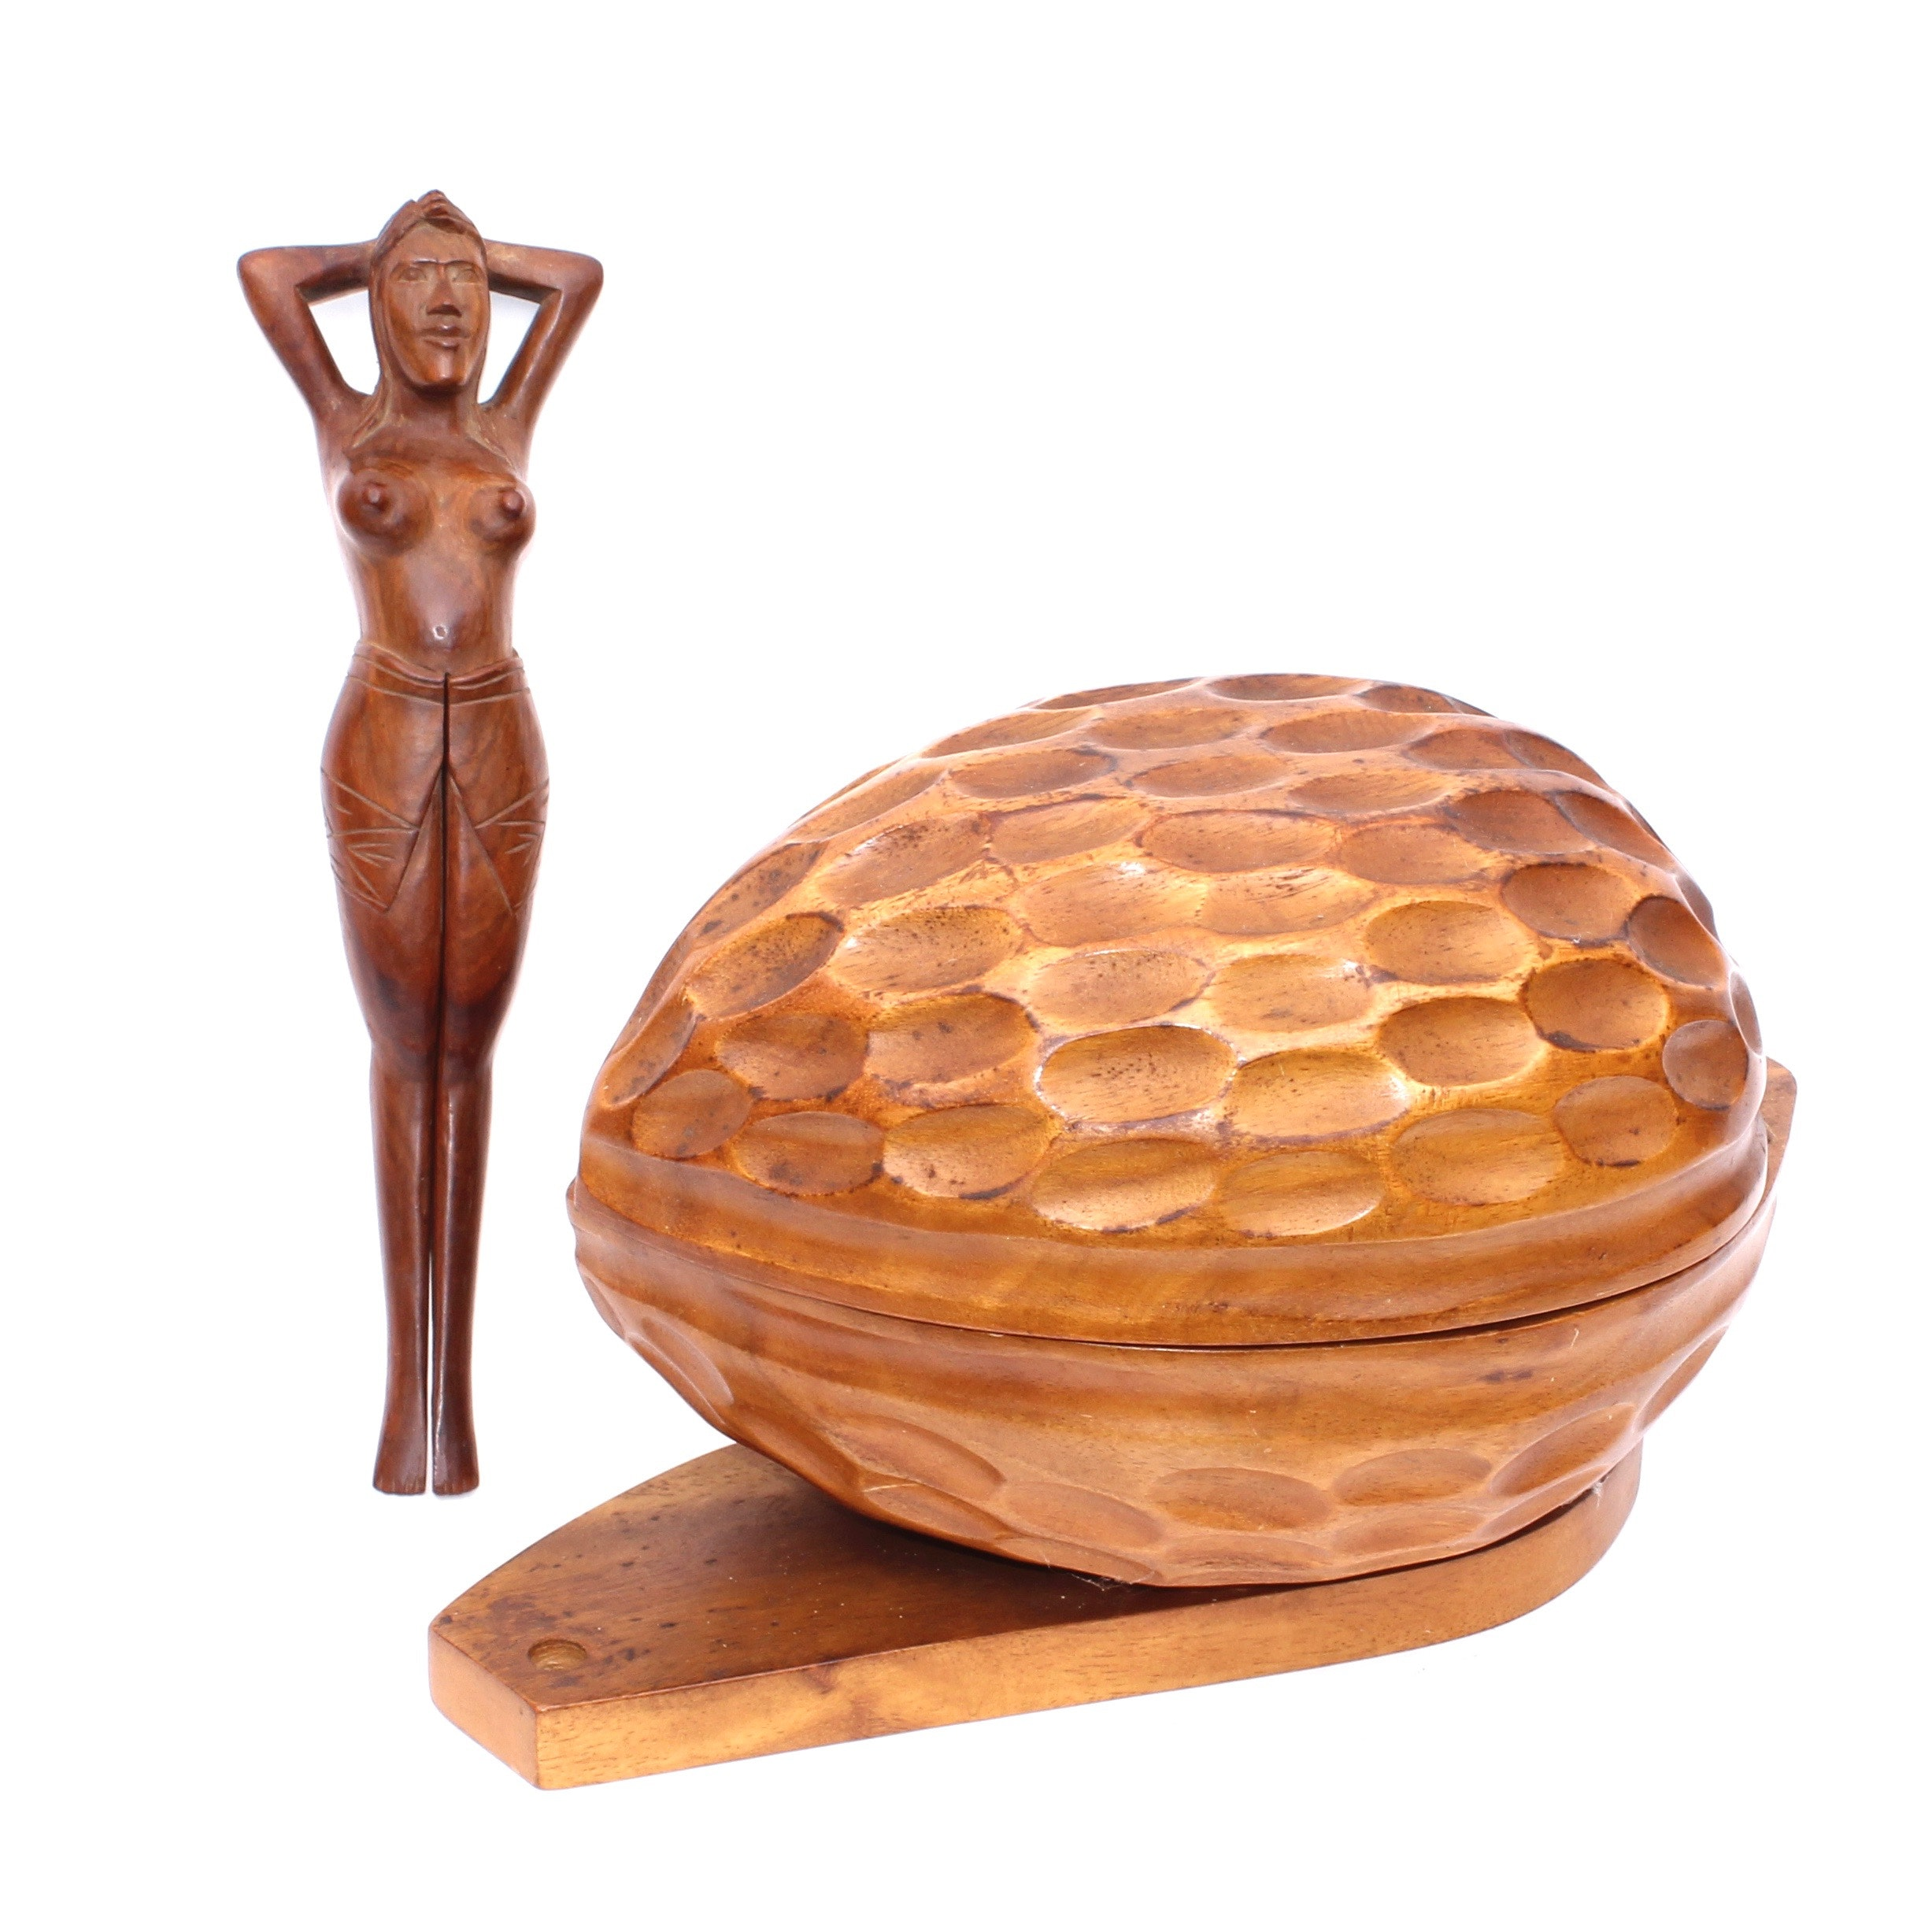 Wooden Carved Nut Bowl and Figure Nut Cracker